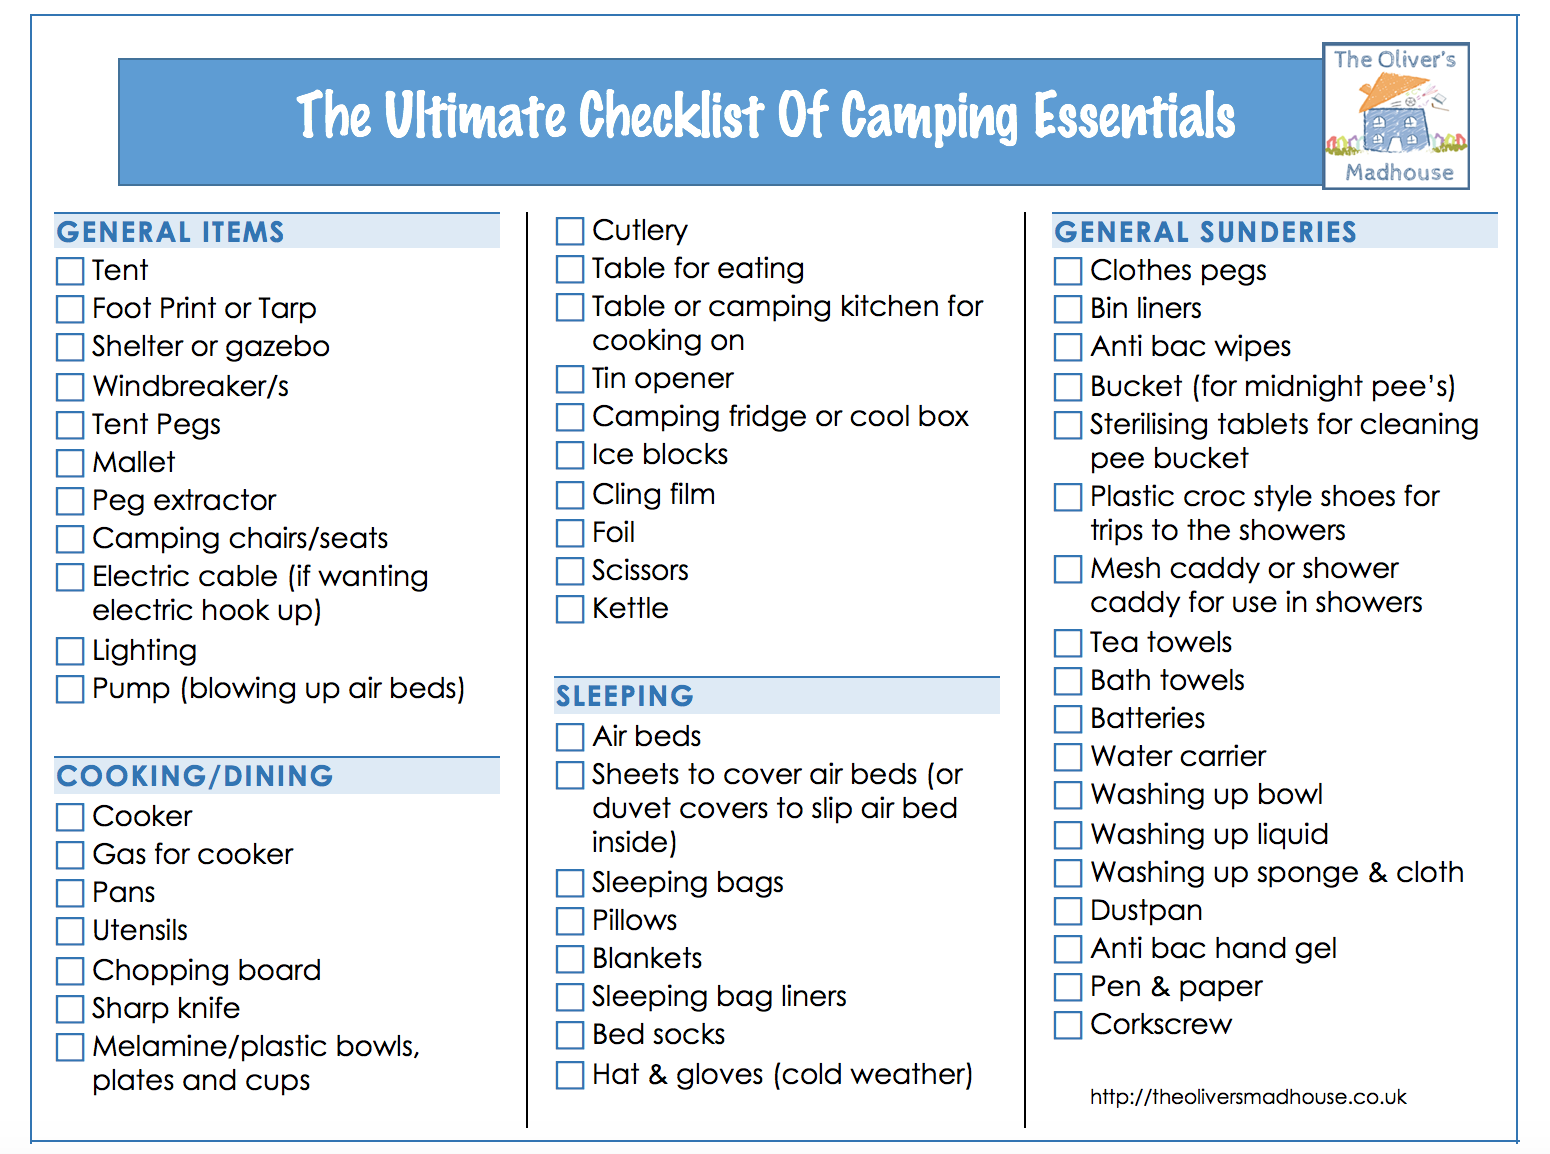 The Ultimate Checklist Of Camping Essentials - What To Pack The Oliver\\\'s Madhouse